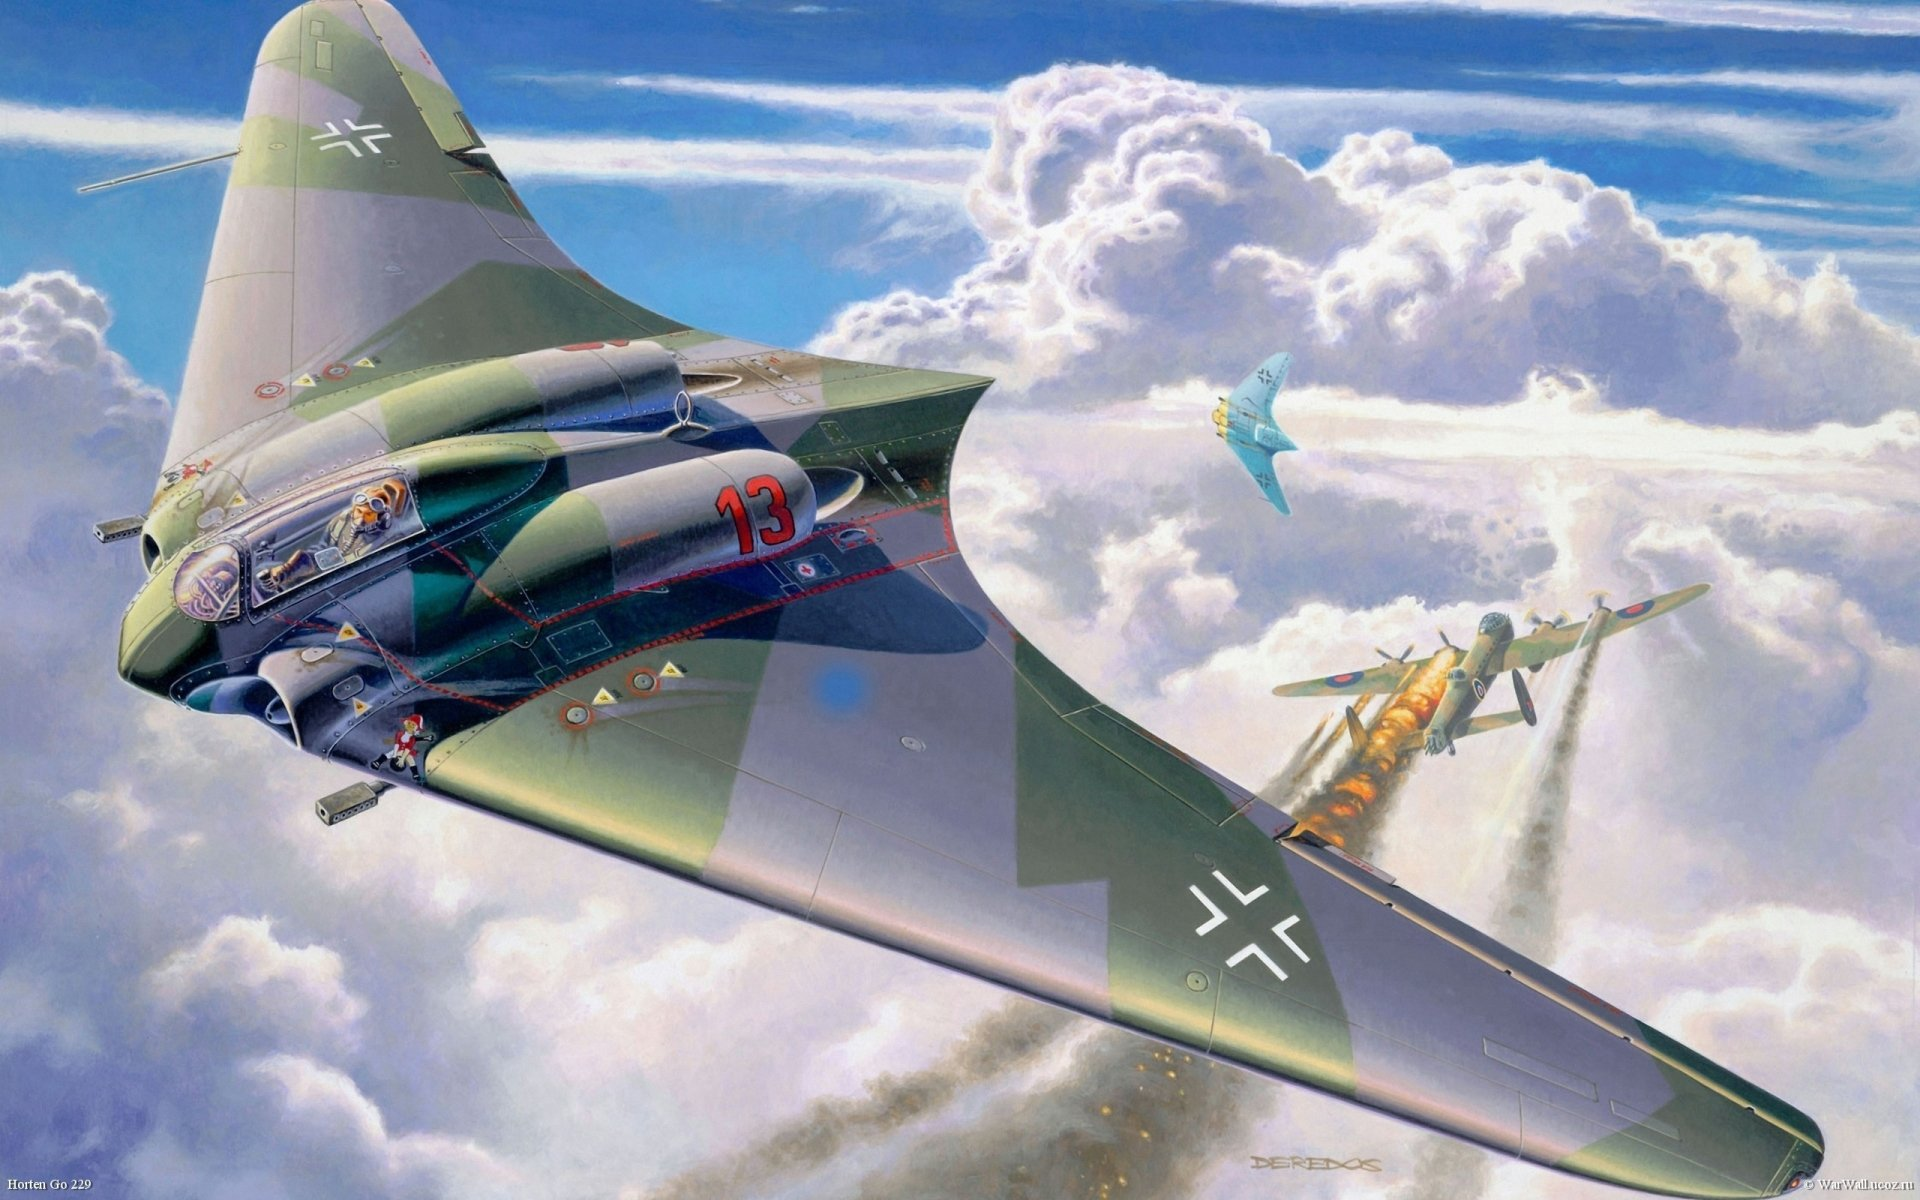 Military - Horten Ho 229  Airplane Jet Fighter Fly Air Force Aircraft Military Wallpaper